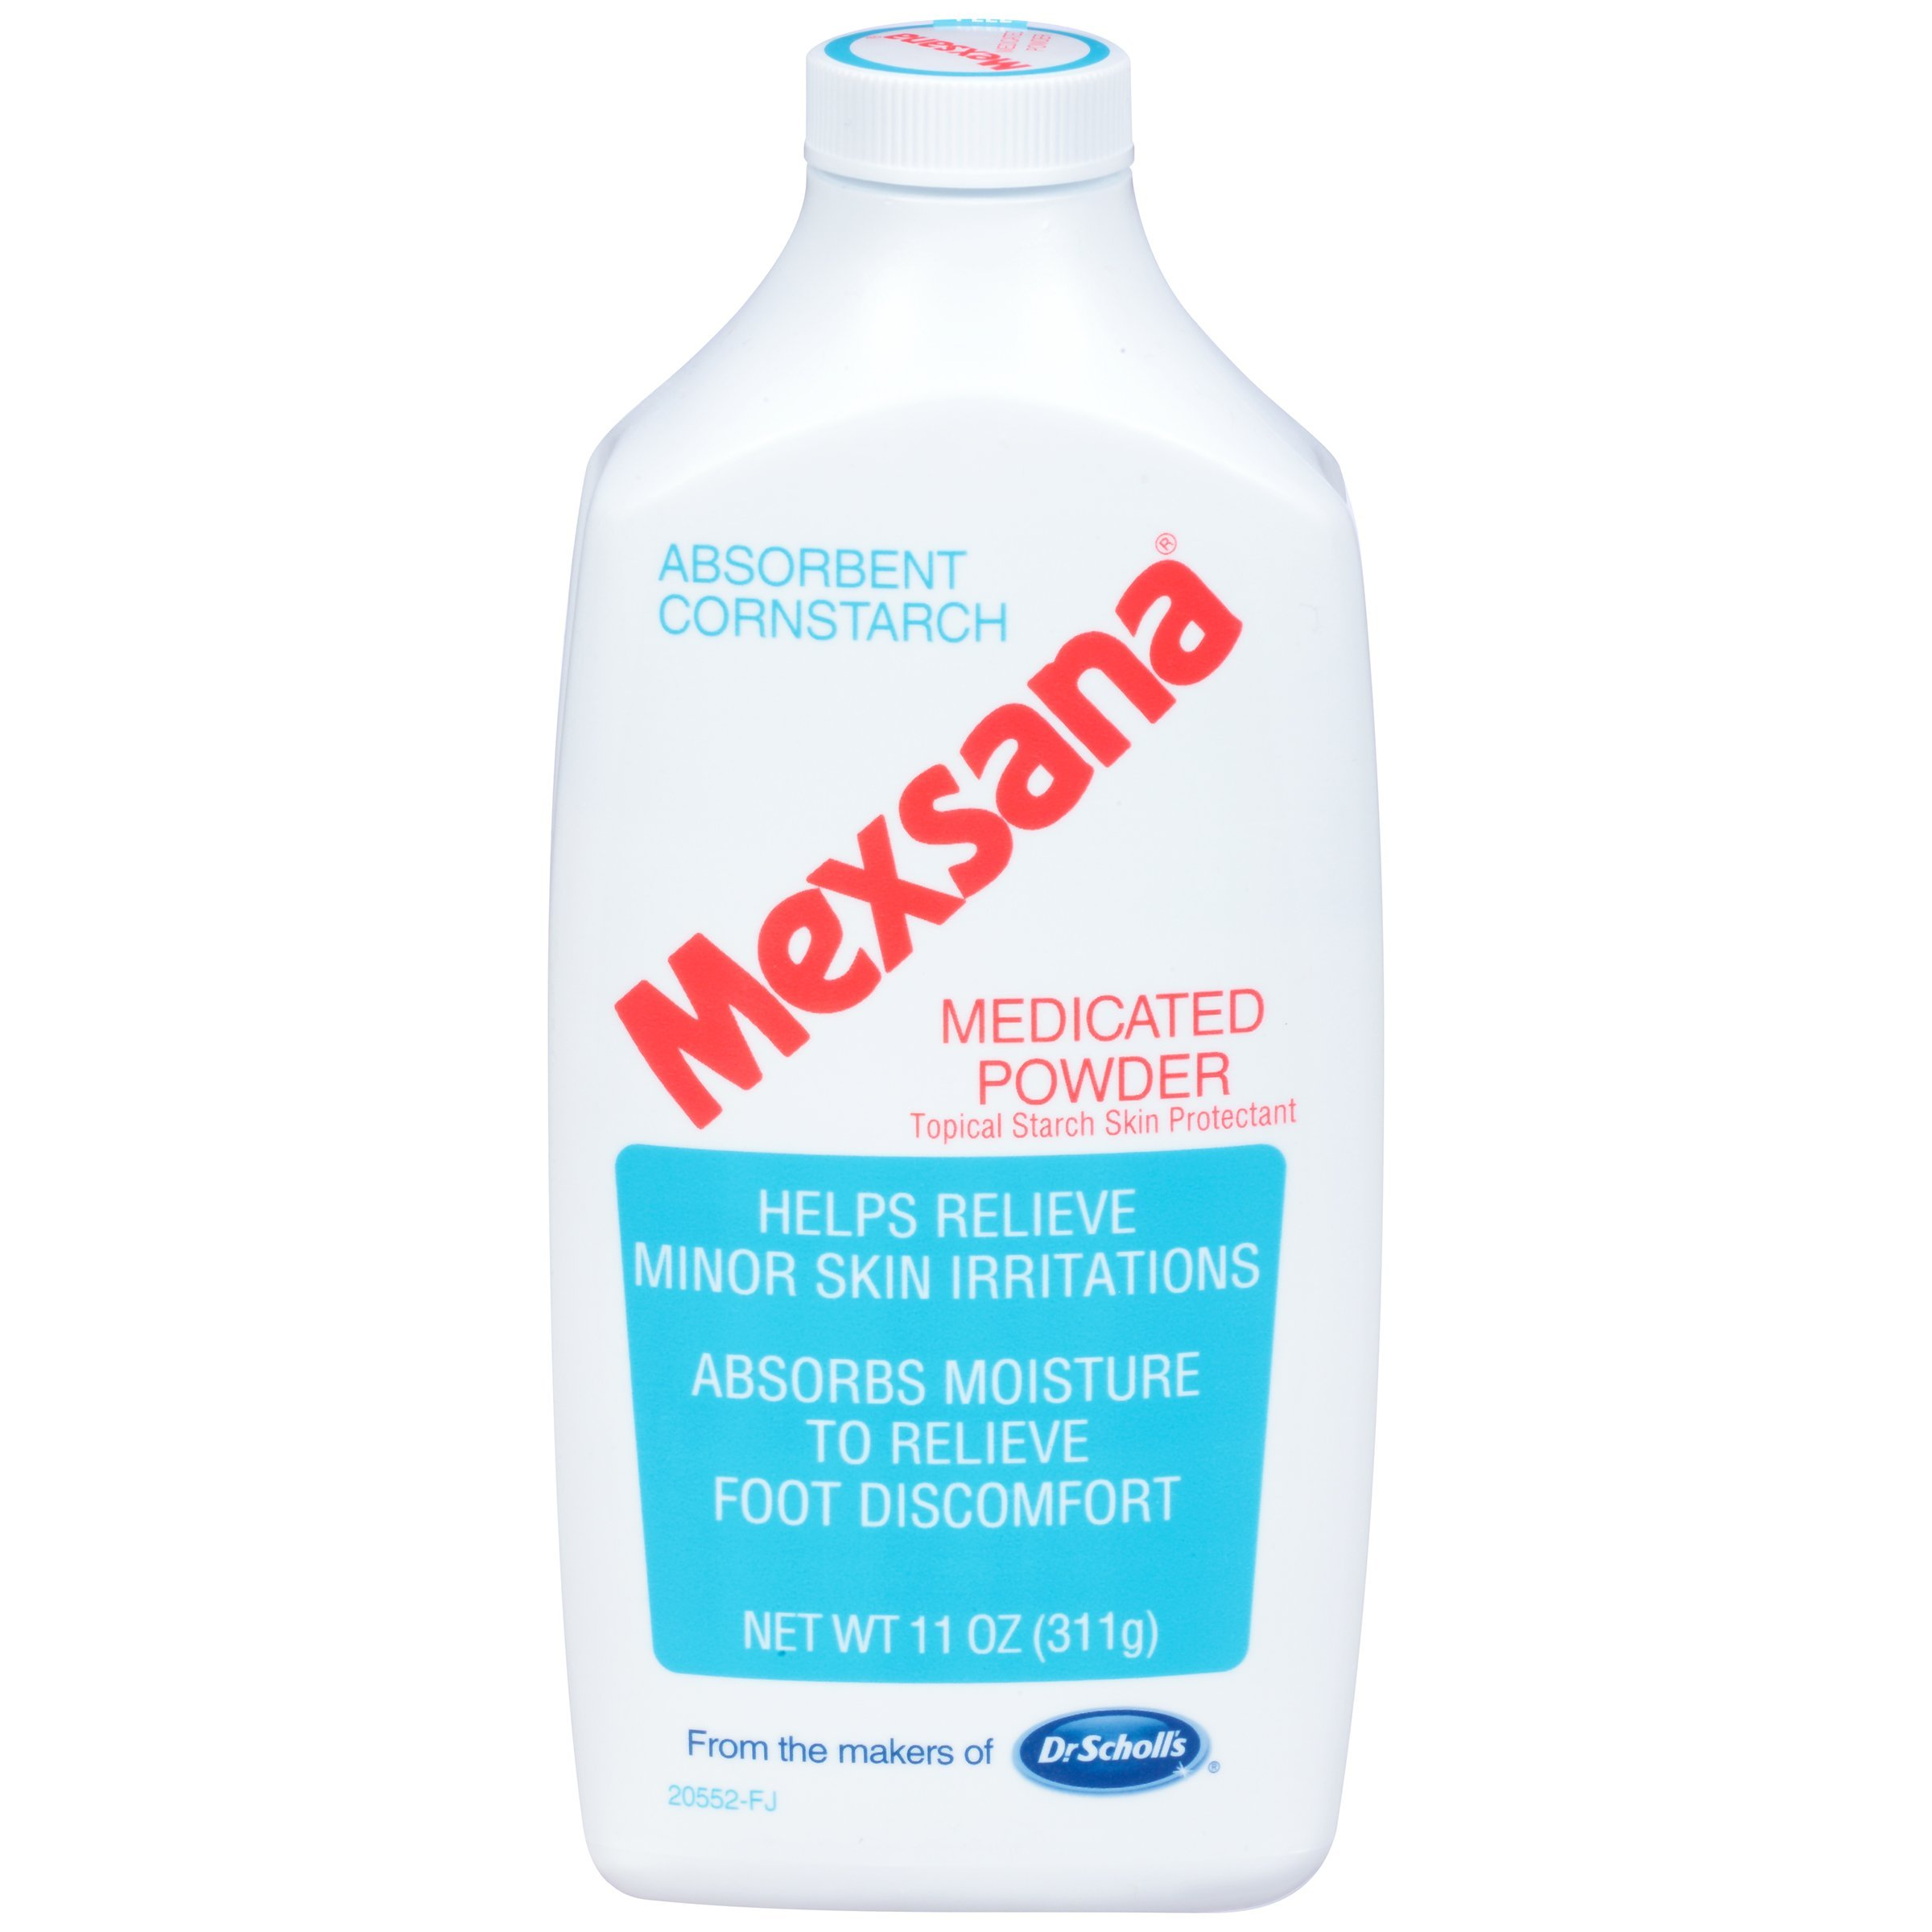 Mexsana Medicated Powder, 11-Ounce Bottle (Pack of 4)